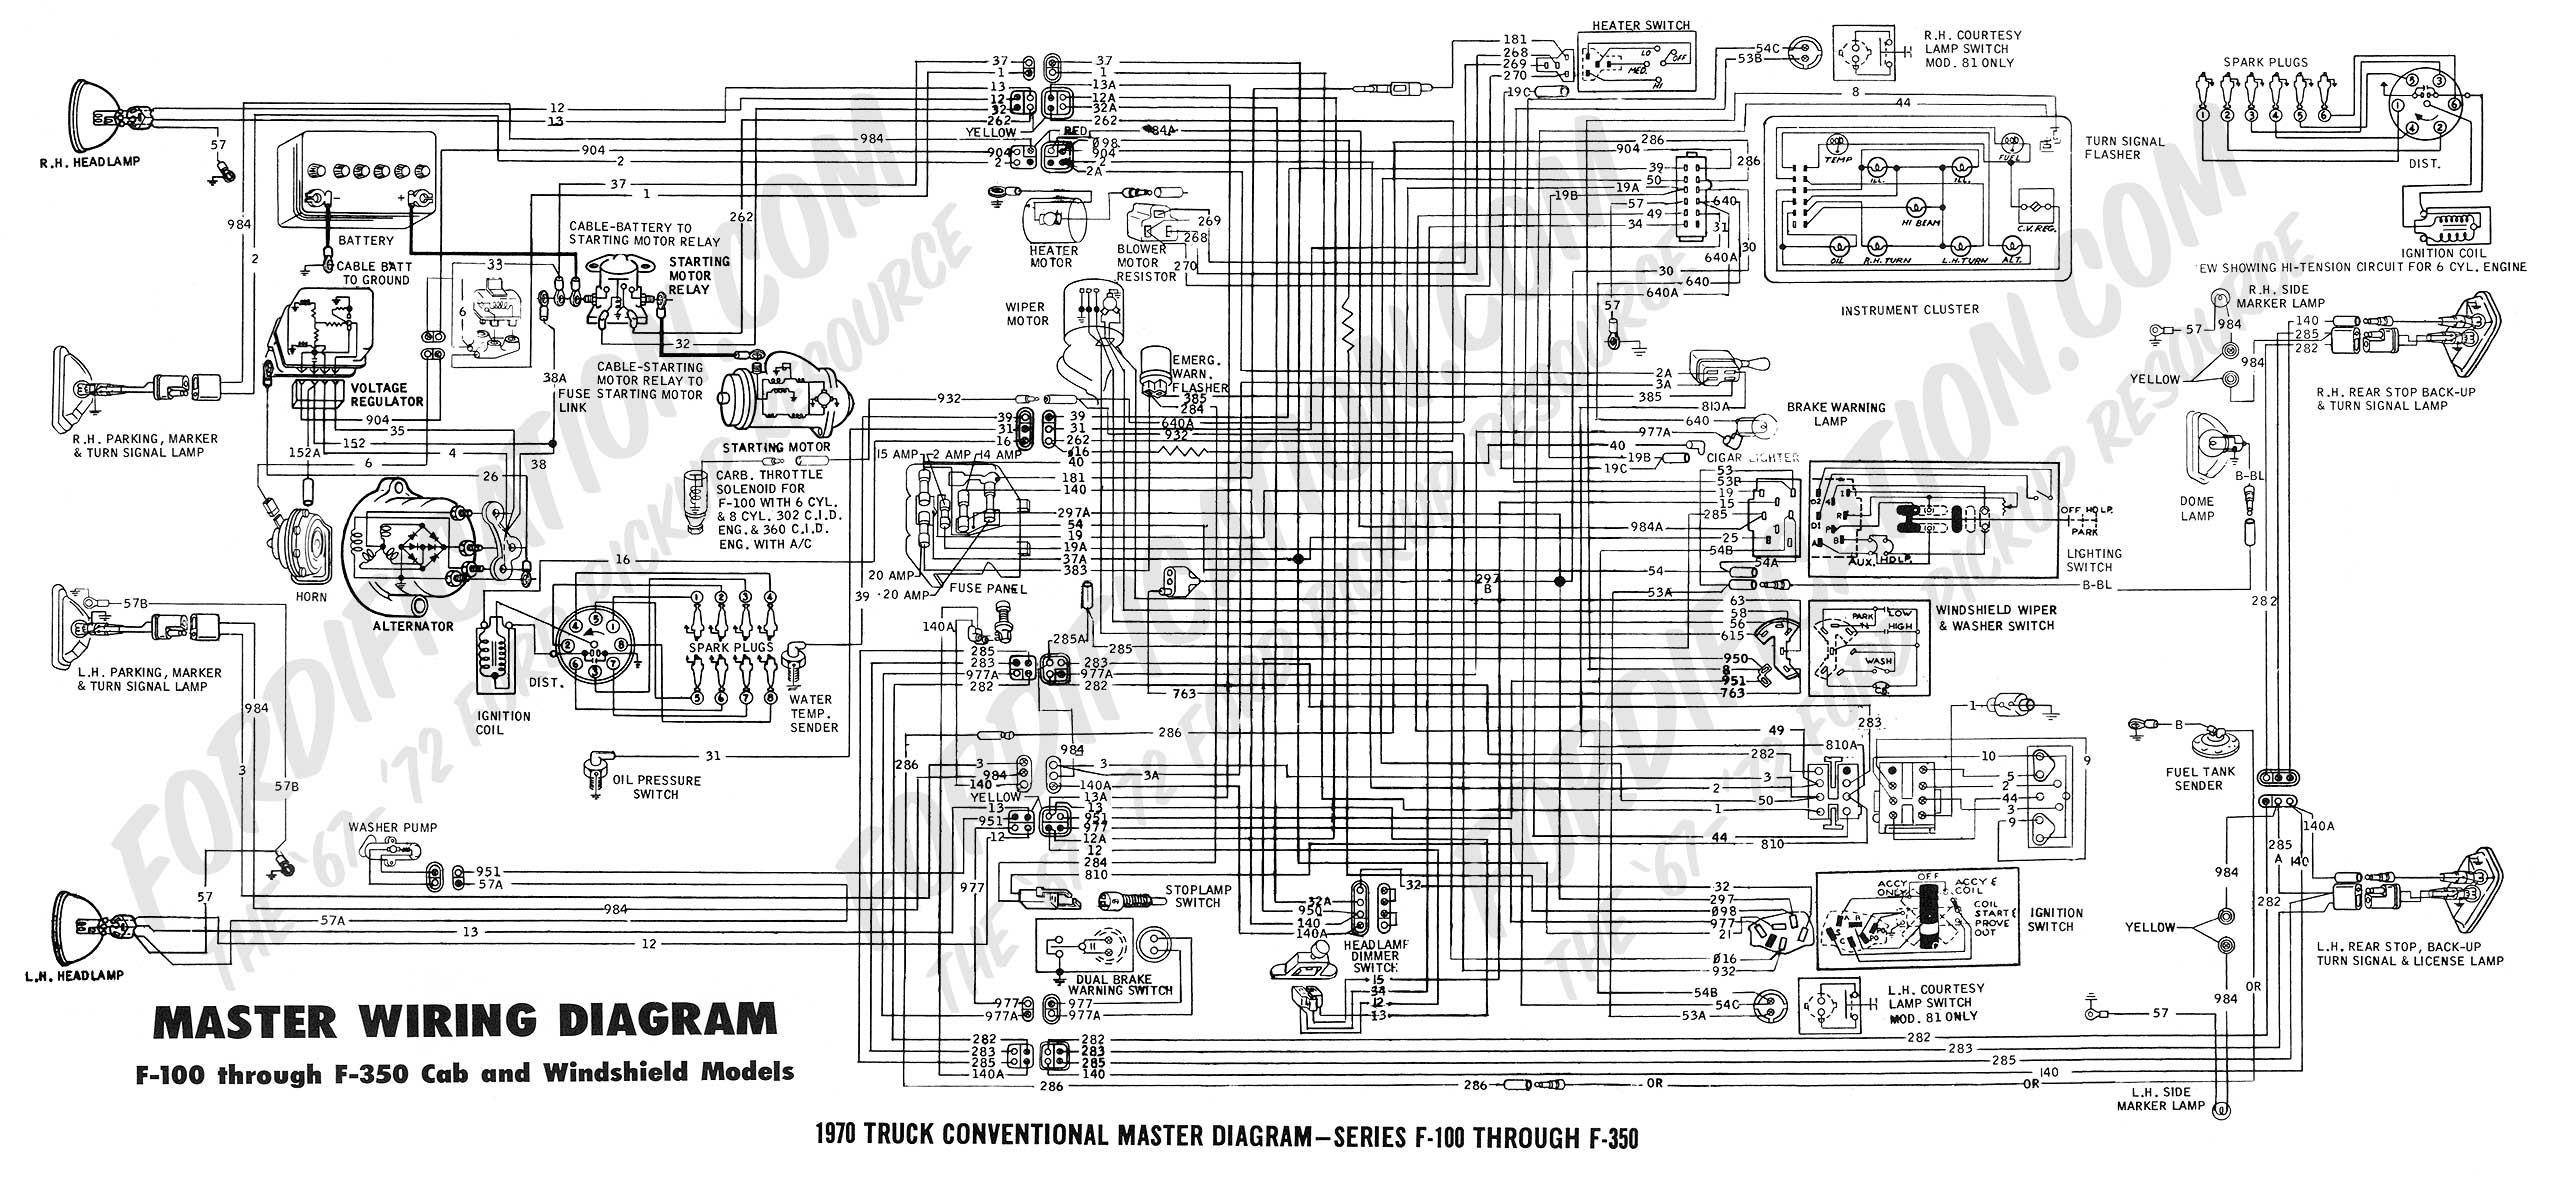 wiring diagram 70_master 1986 ford f150 wiring diagram 1986 ford bronco ii wiring diagram 2004 ford f150 engine wiring diagram at bayanpartner.co